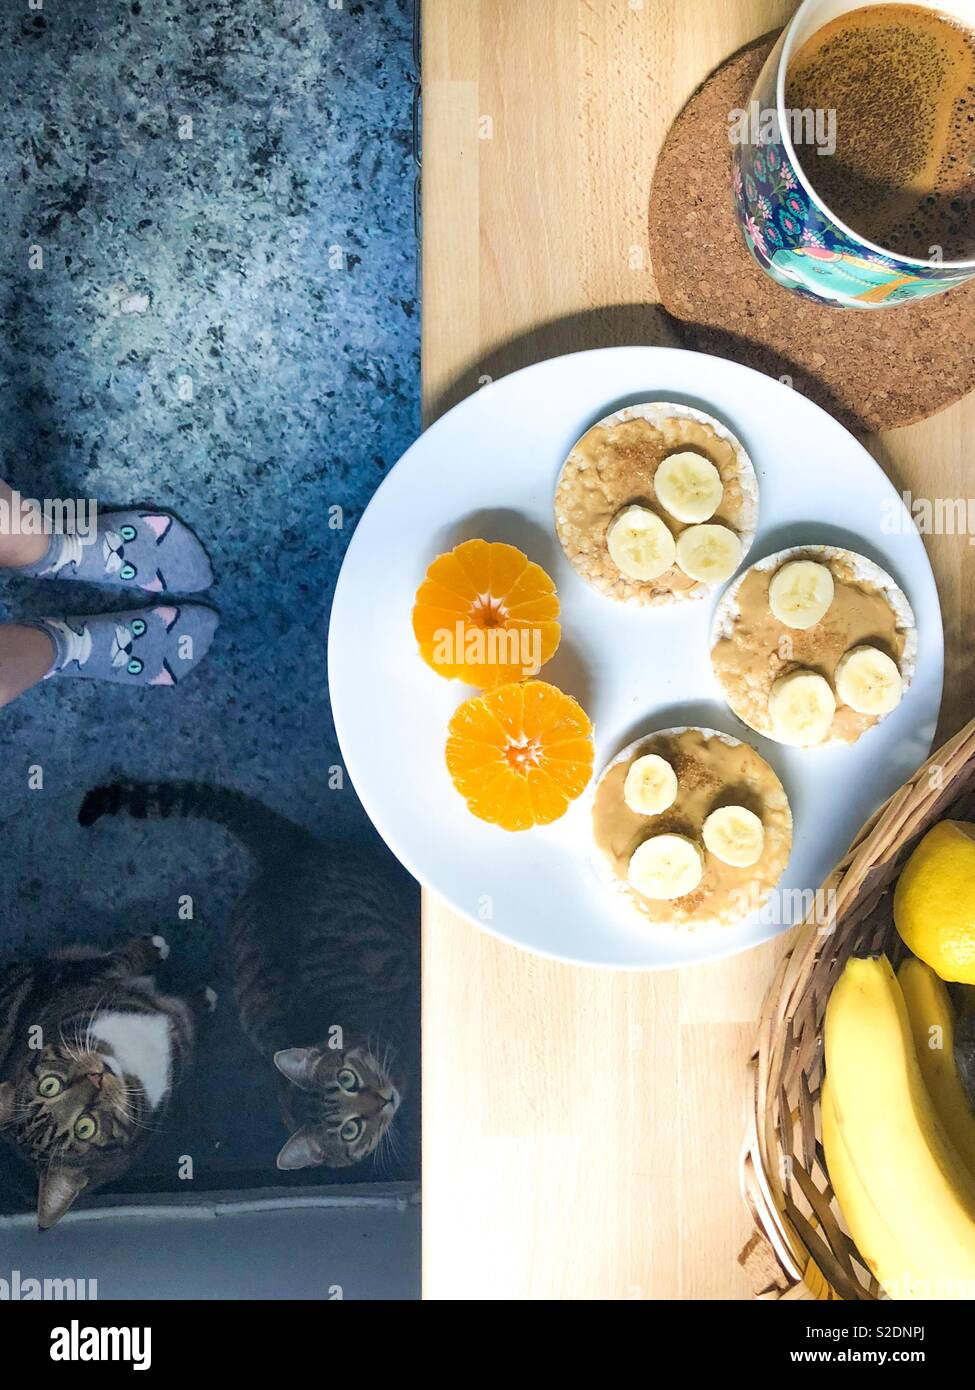 Morning routine - breakfast and two cats as a company - Stock Image